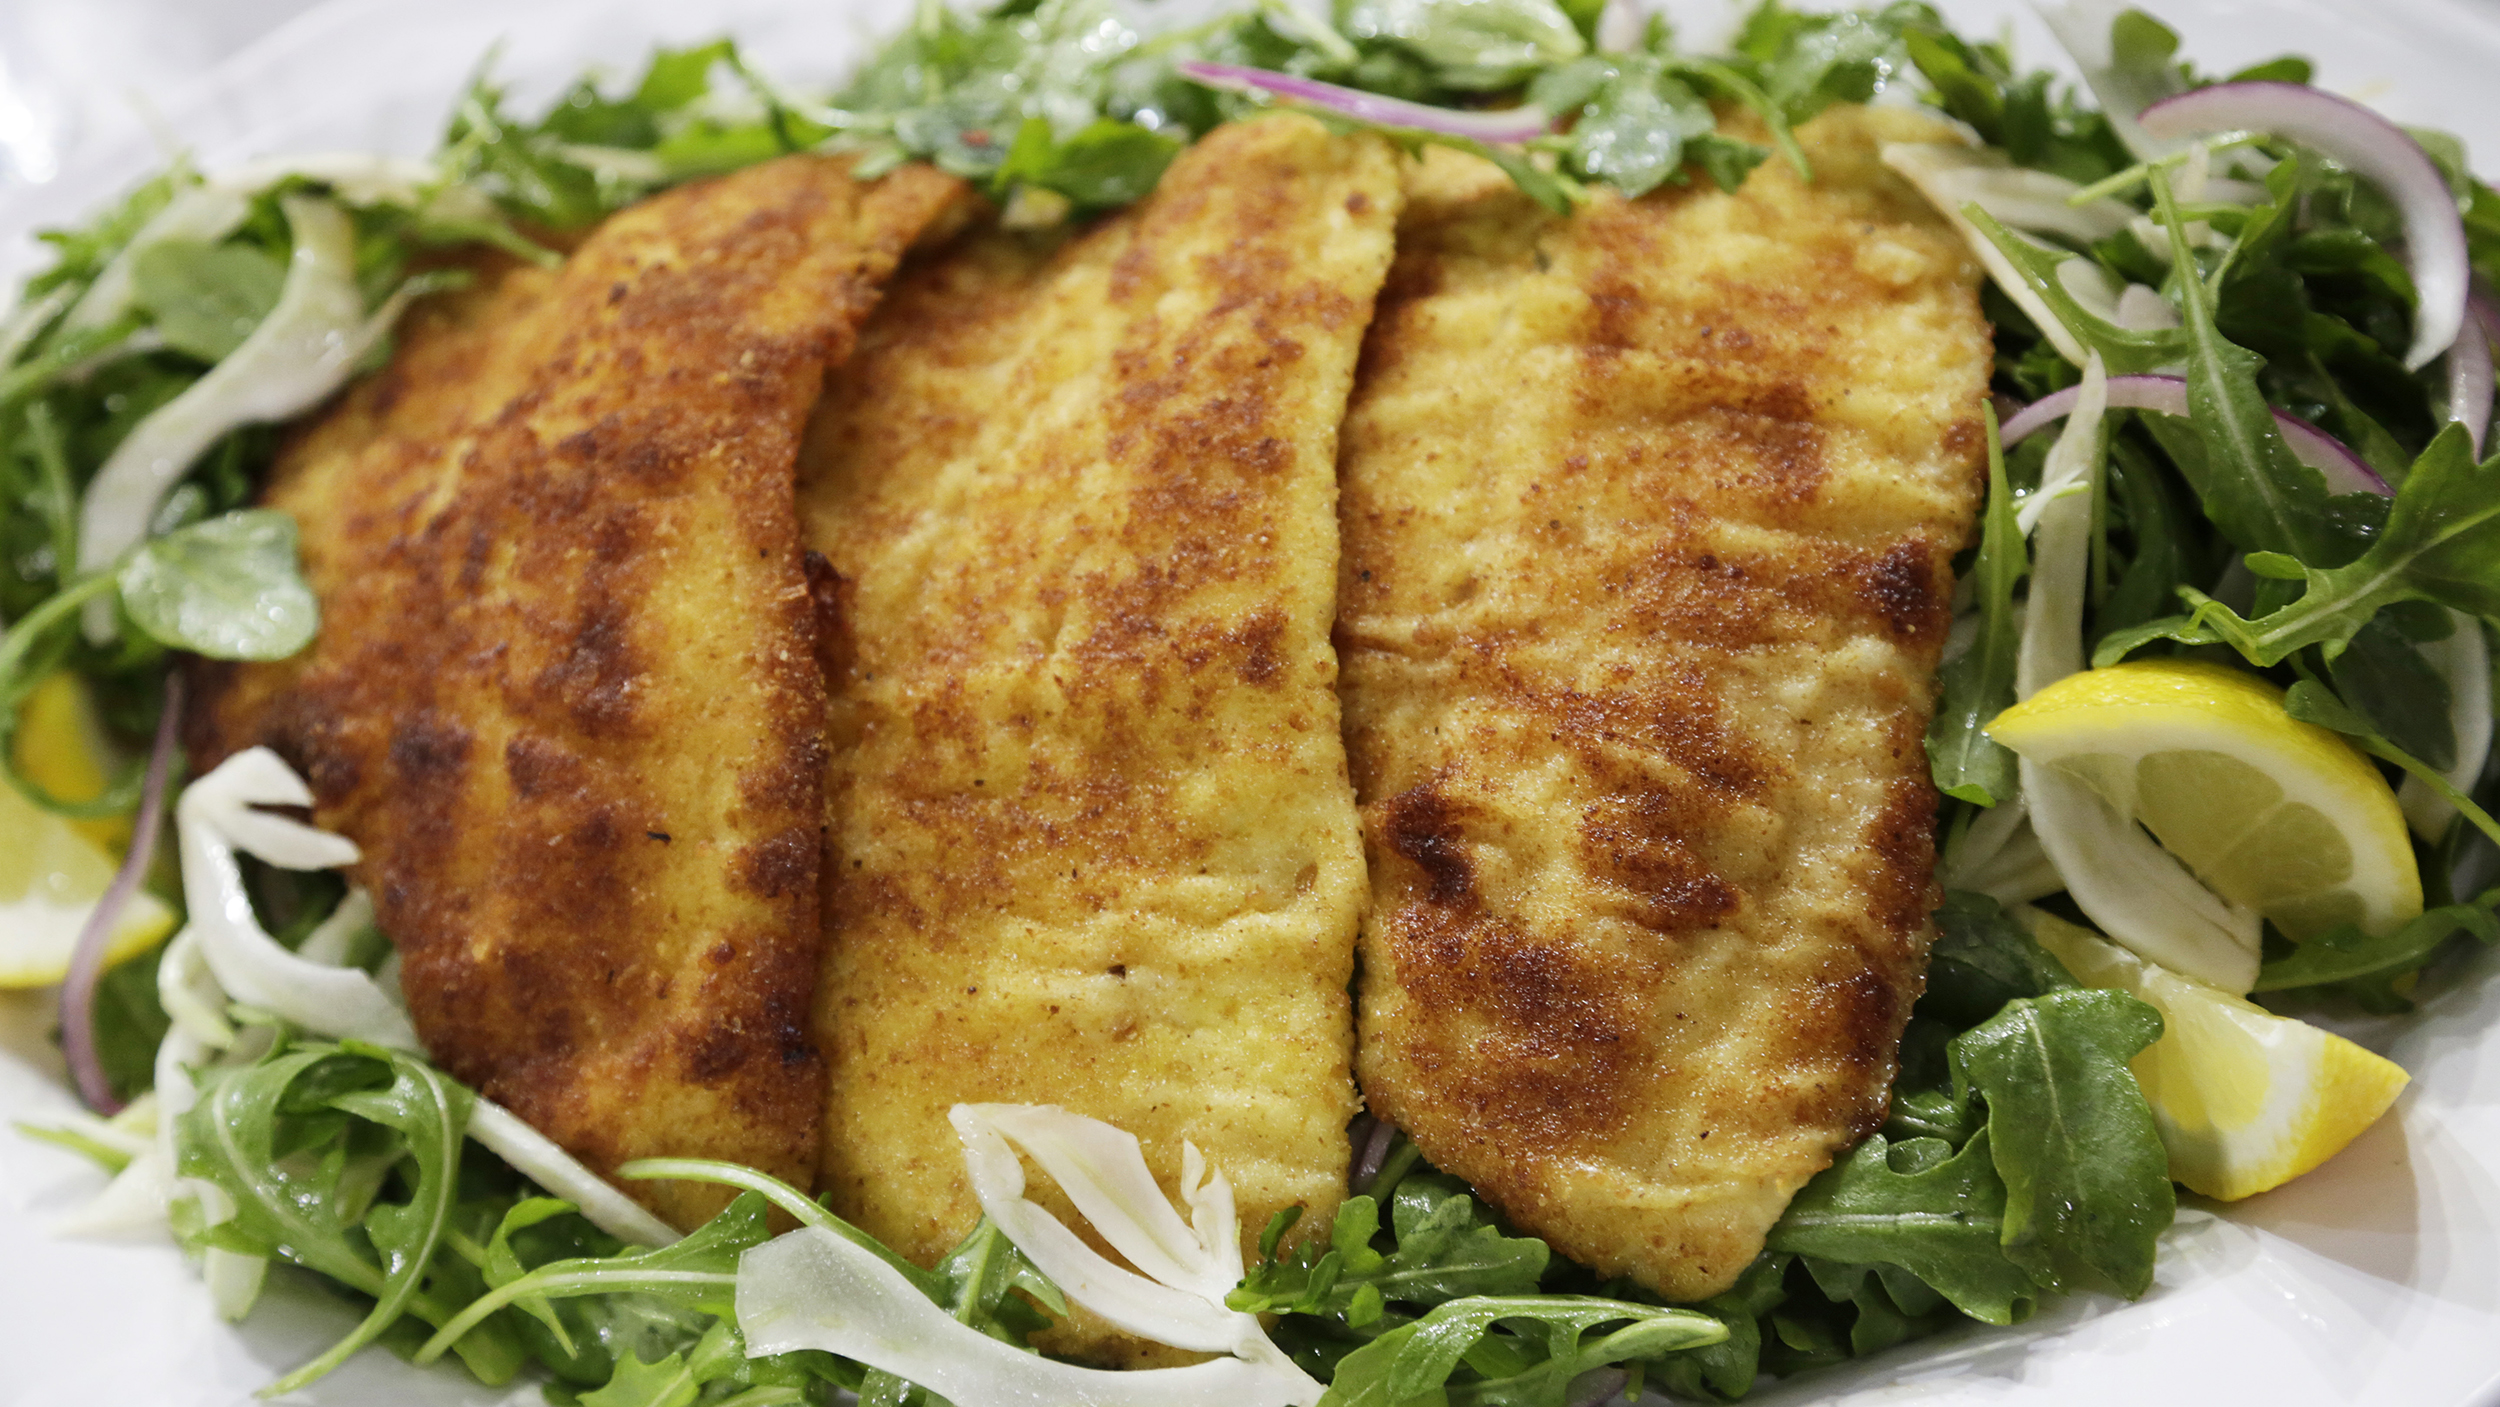 Crispy Oven-Baked Flounder over Arugula and Fennel Salad - TODAY.com